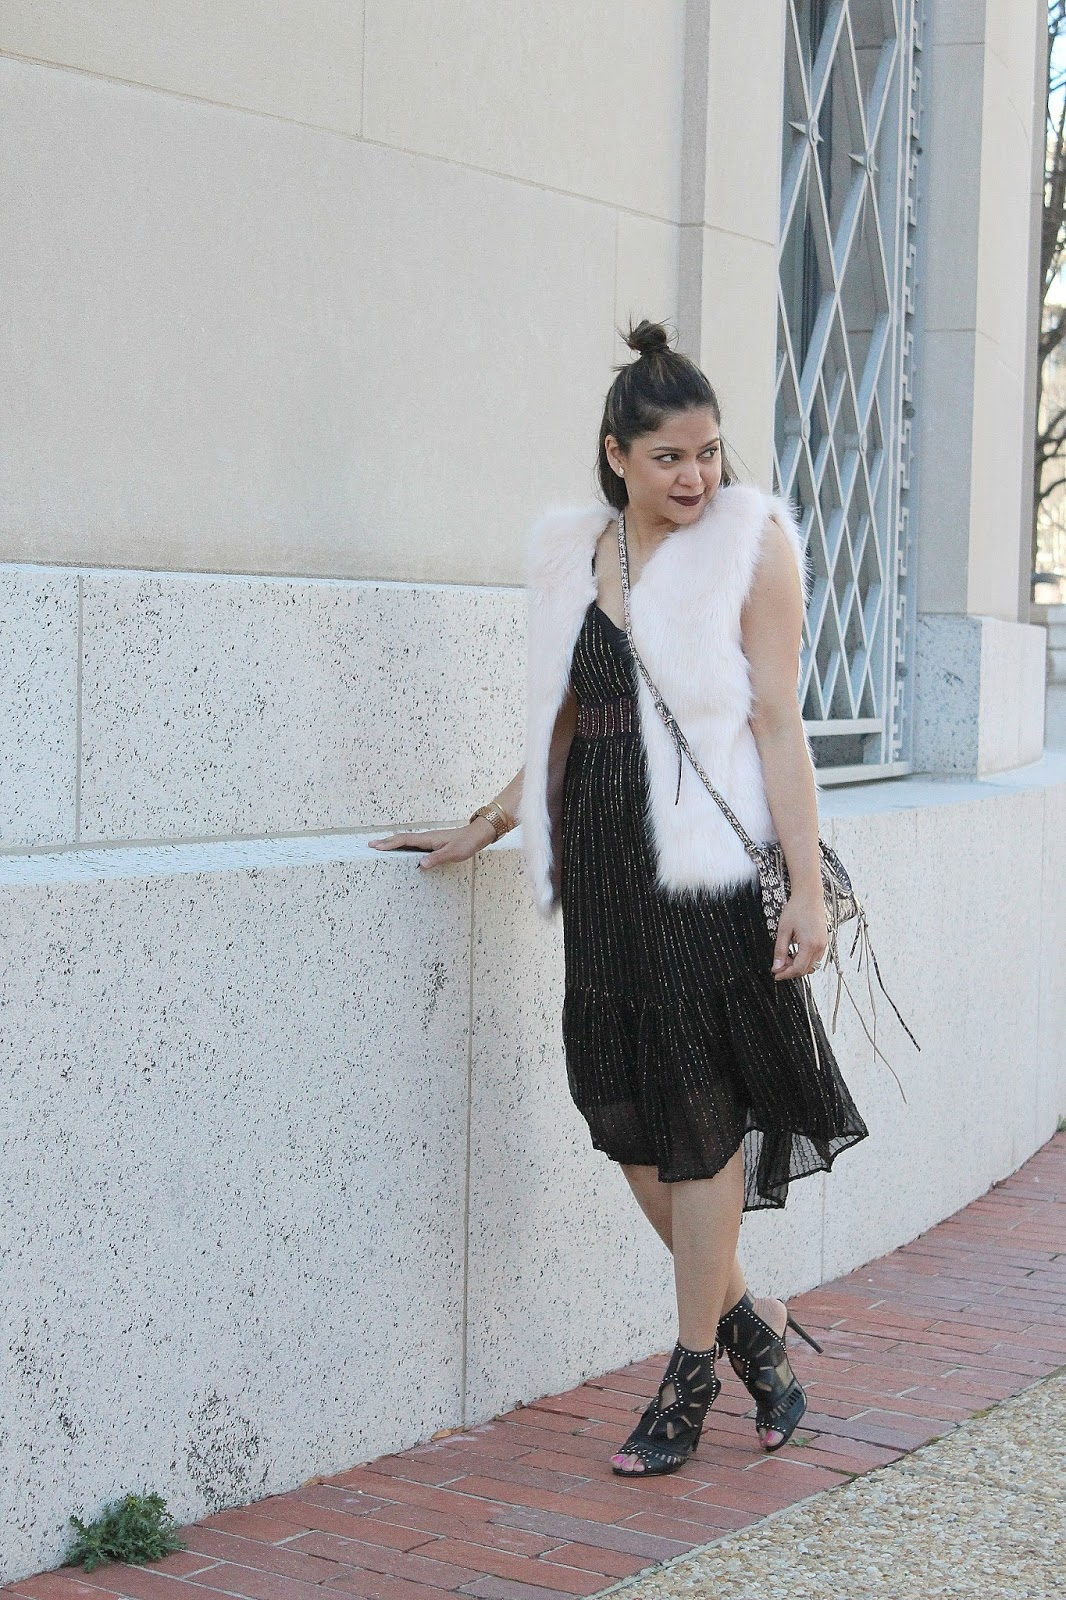 HOW TO WEAR A FUR IN SPRING - ootd